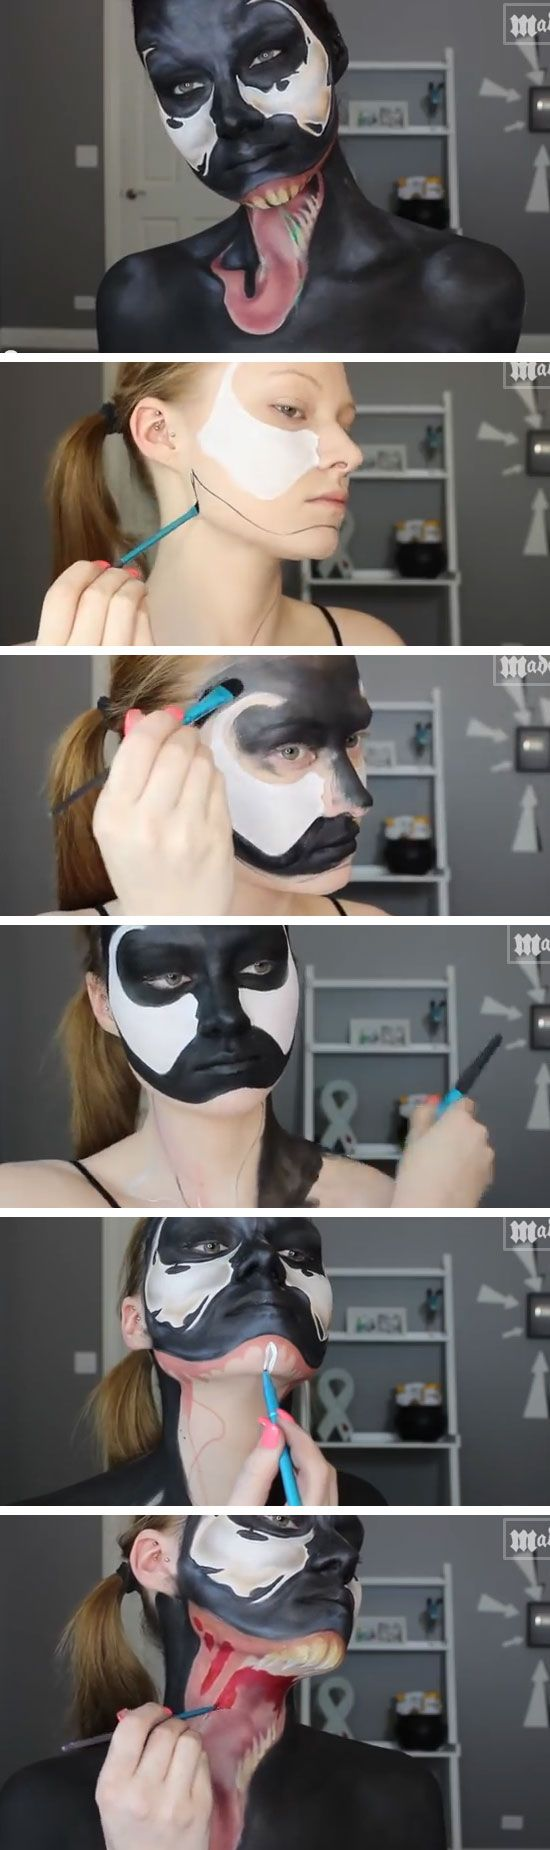 Spiderman - Venom Makeup Tutorial | Click Pic for 22 Easy DIY Halloween Costumes for Women 2014 | Last Minute Halloween Costumes for Women